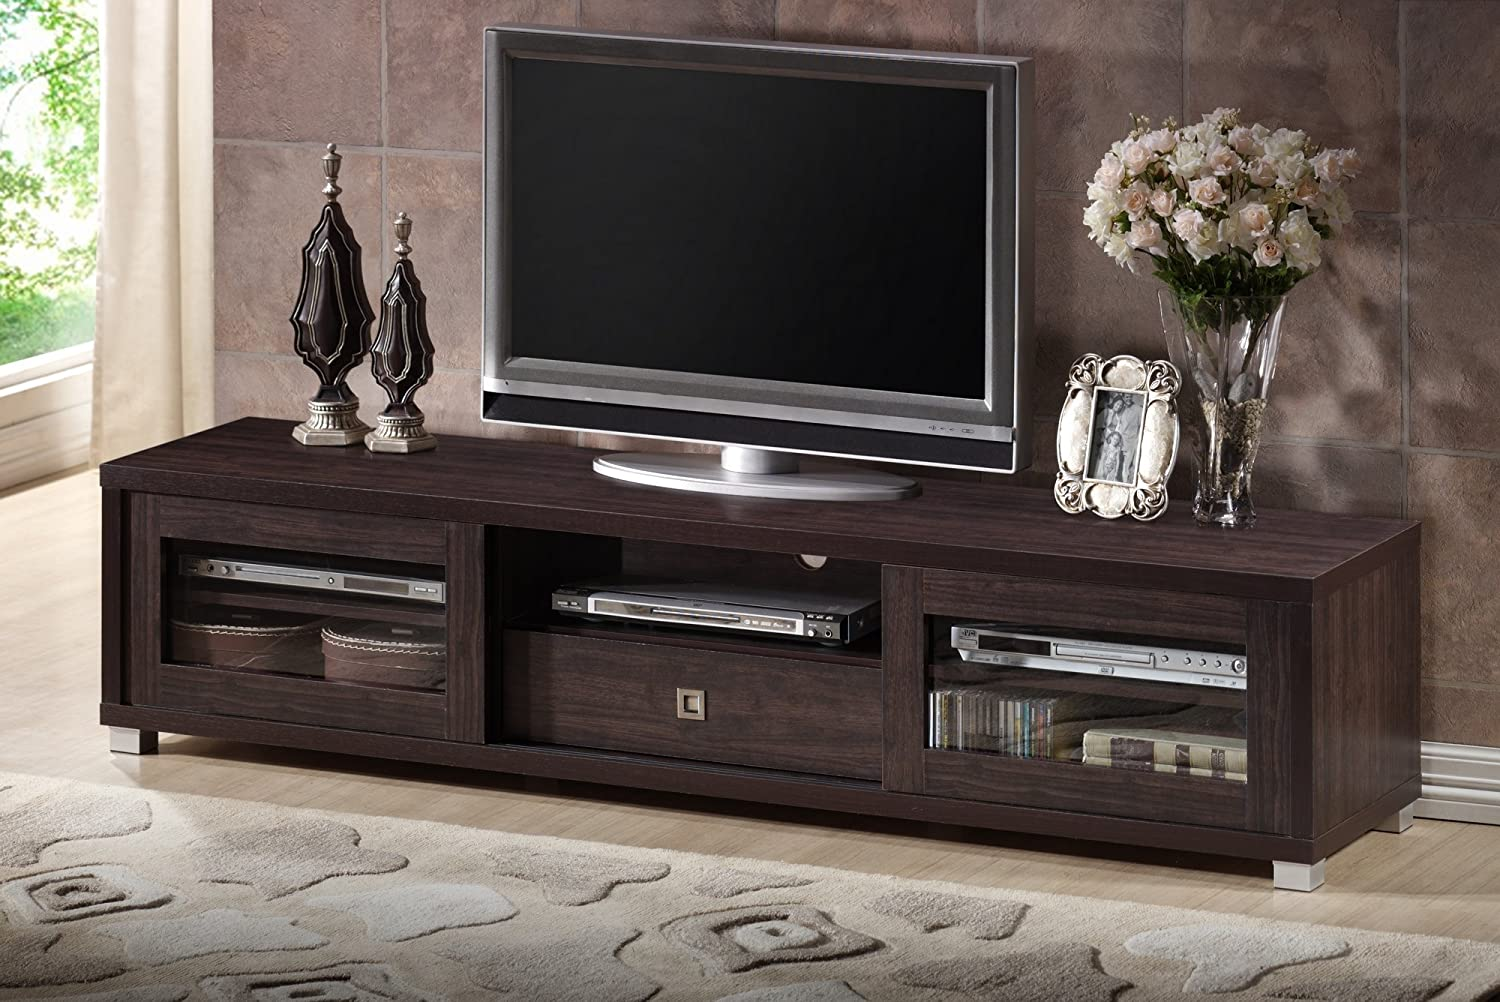 Amazon.com Wholesale Interiors Baxton Studio Beasley TV Cabinet with 2 Sliding Doors and Drawer 70\  Dark Brown Kitchen \u0026 Dining : tv doors - pezcame.com